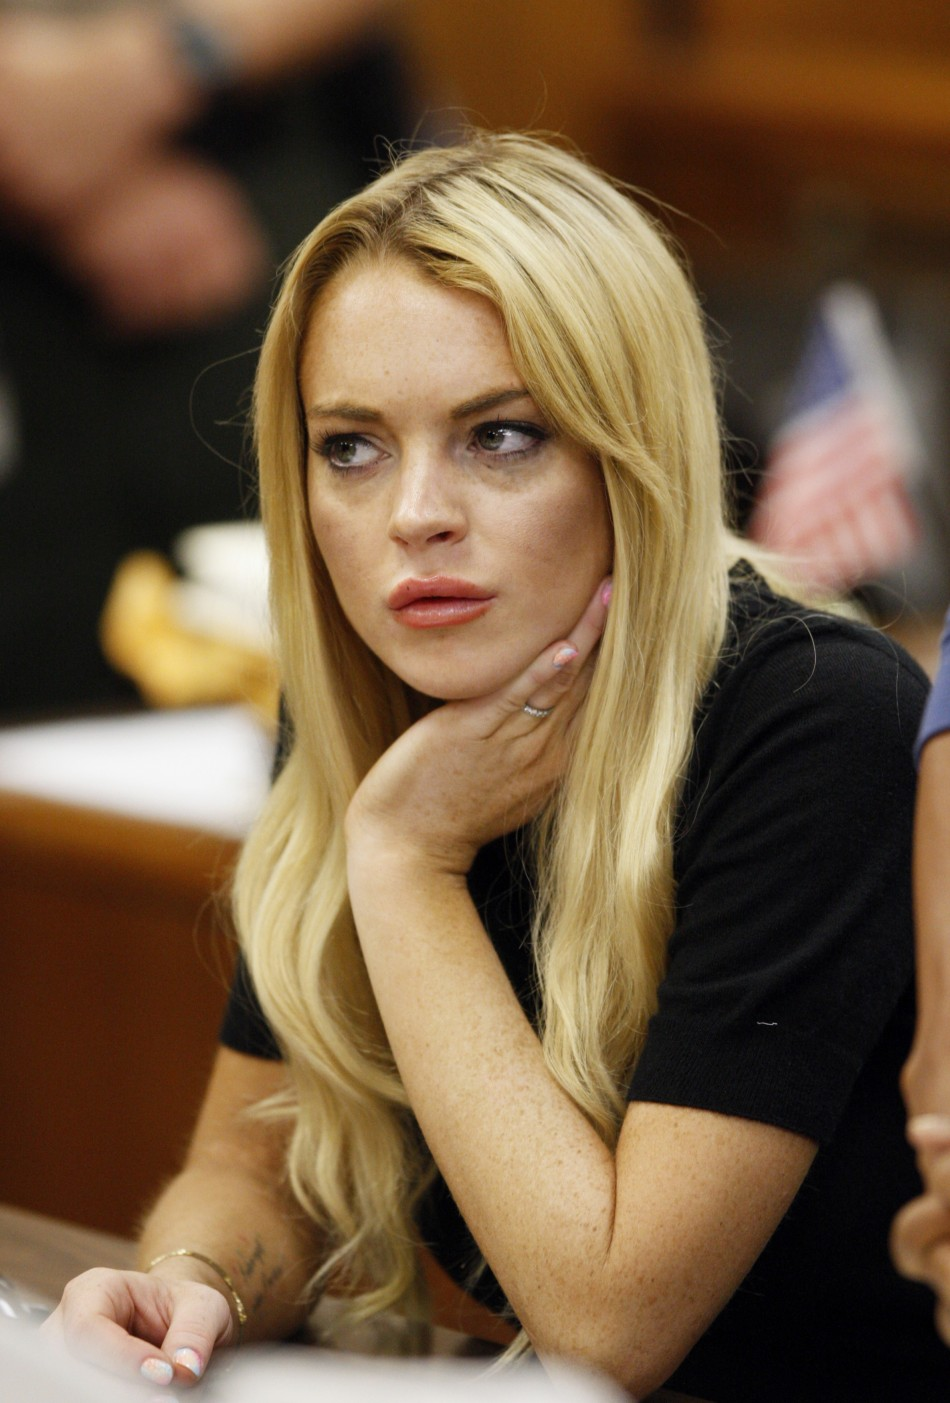 Lindsay Lohan To Play Elizabeth Taylor in Lifetime Biopic